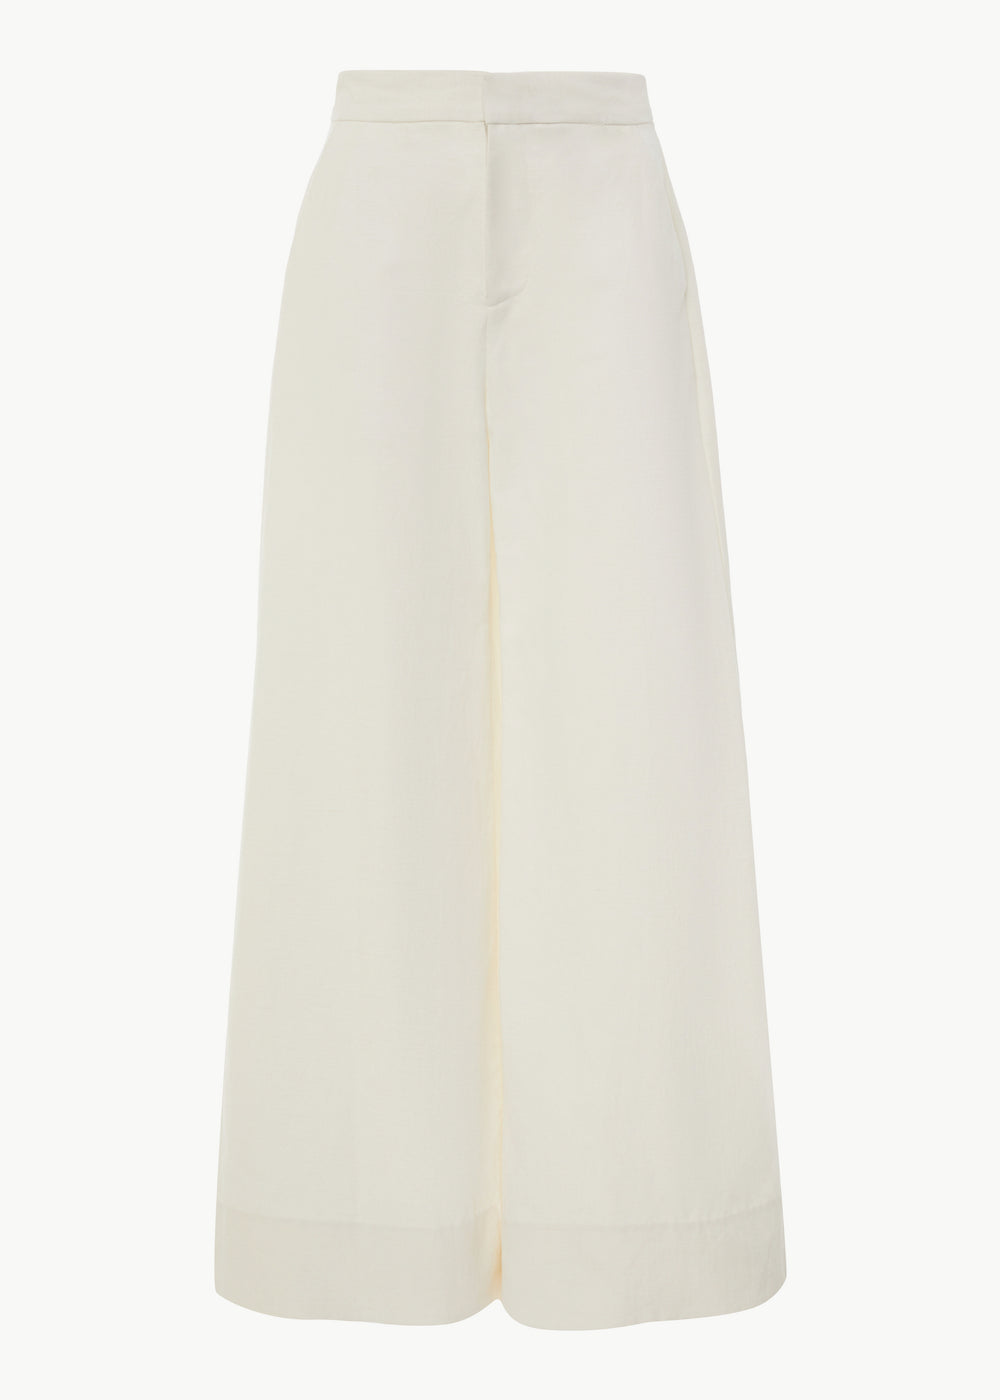 Wide Leg Pant in Cotton Linen - Ivory - CO